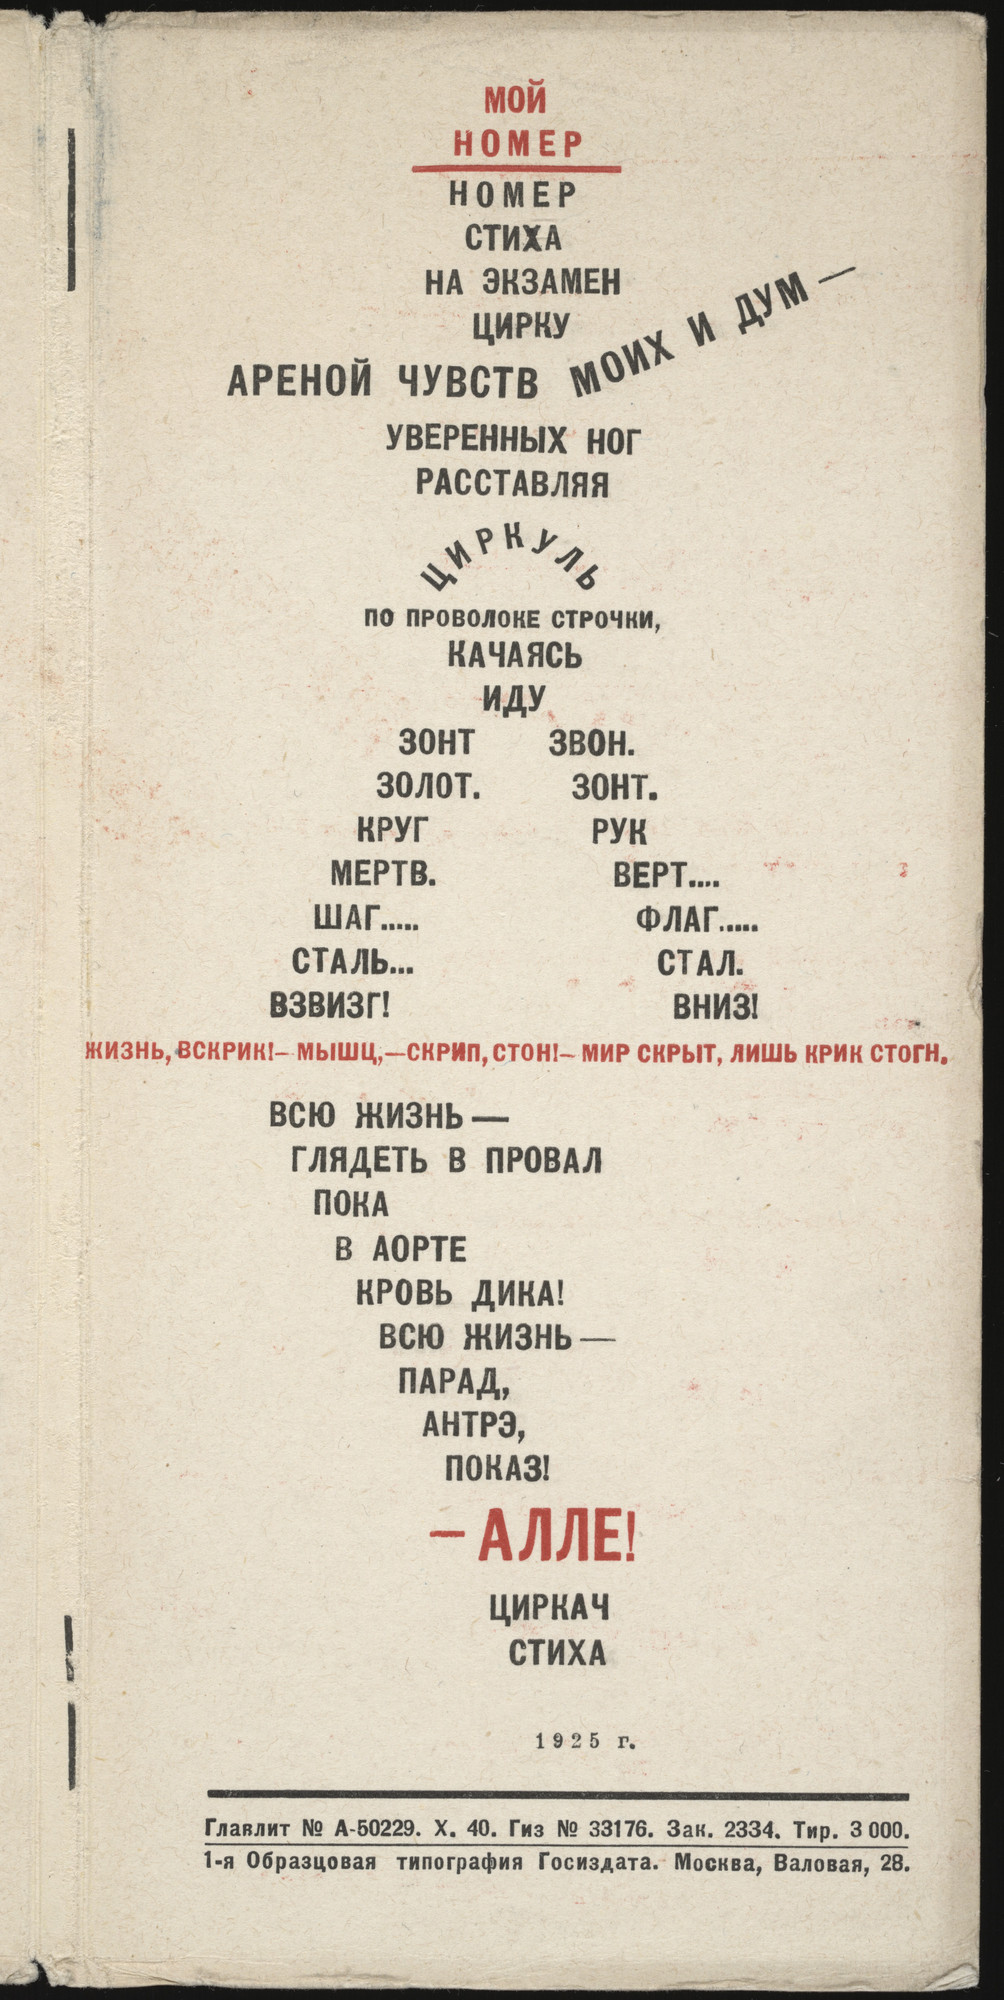 Solomon Telingater. Slovo predostavliaetsia Kirsanovu (Kirsanov has the 'Right of Word'). 1930